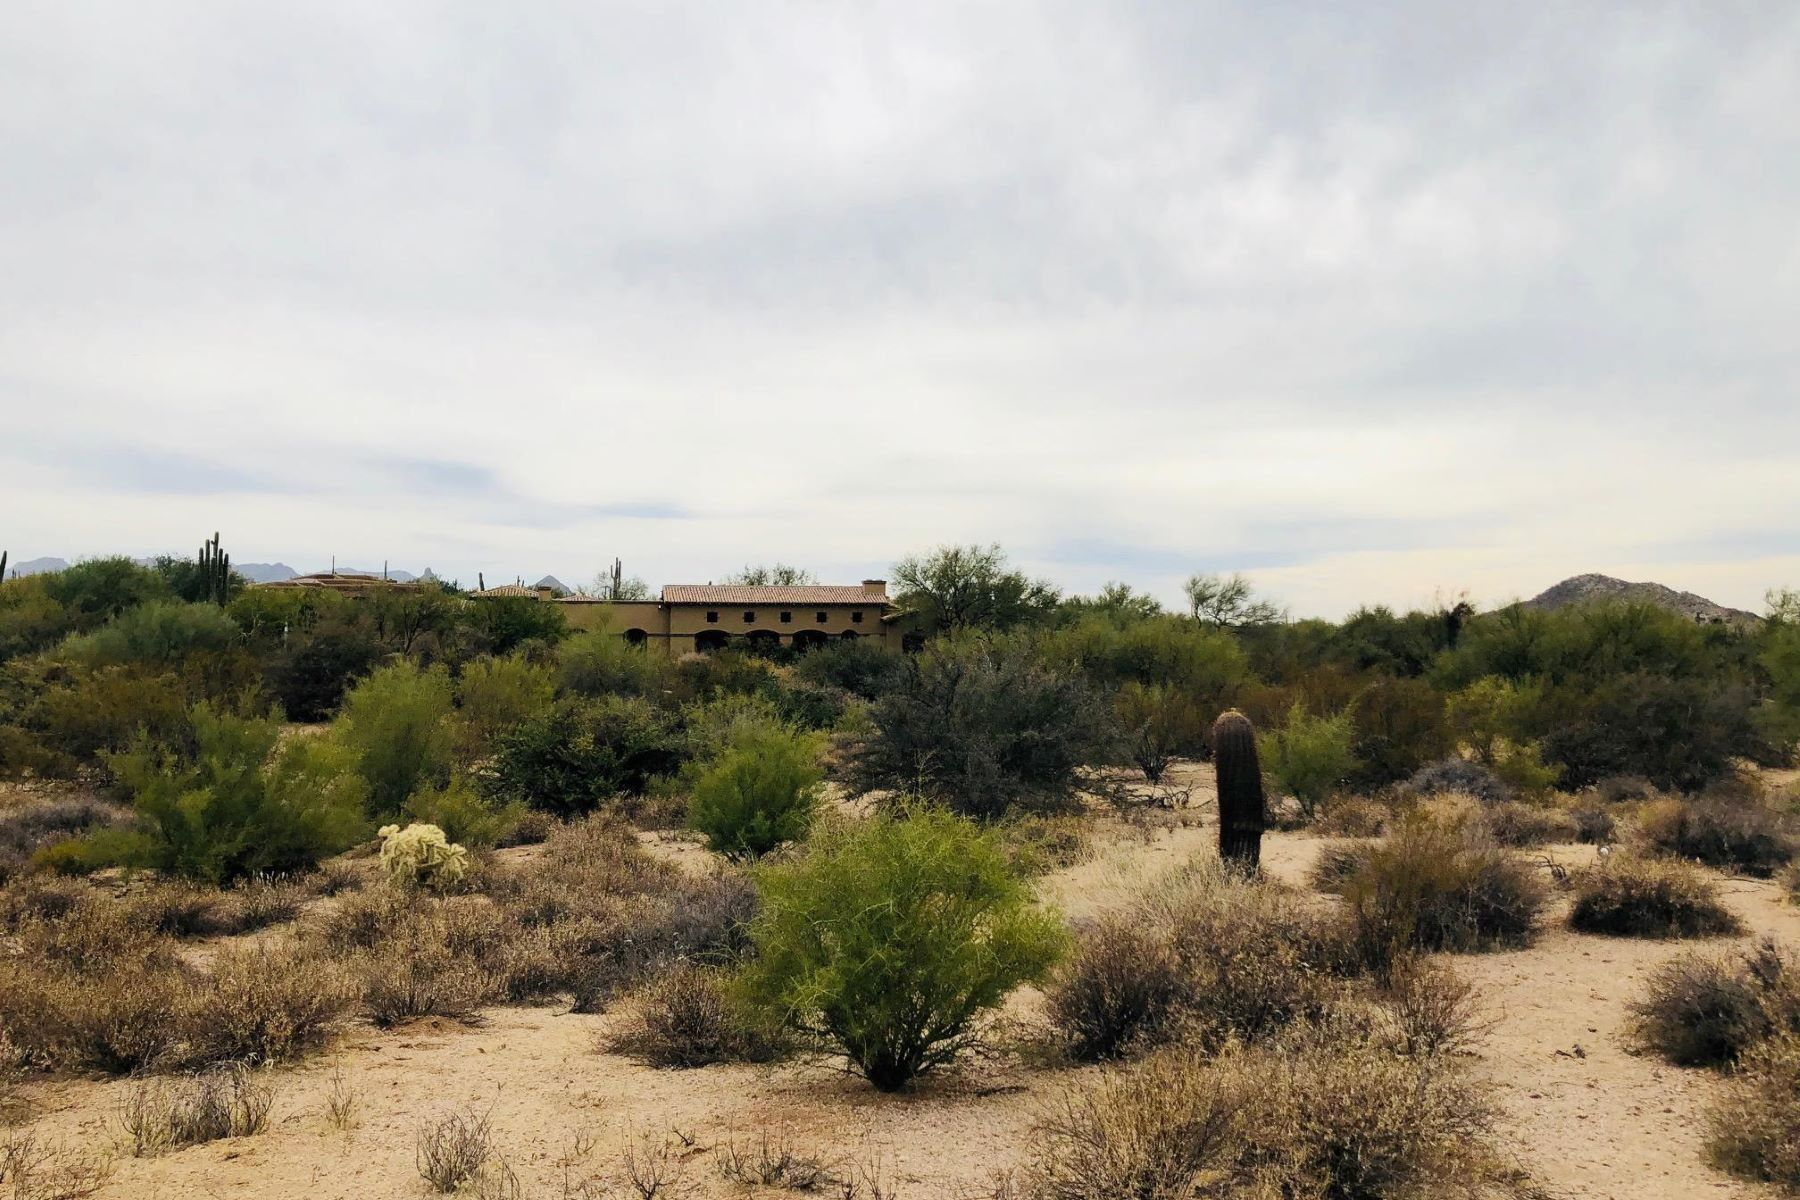 Land for Sale at 1.15 acre home site in the guard-gated community of Whisper Rock Estates 8477 E Homestead Cir lot 146, Scottsdale, Arizona, 85266 United States